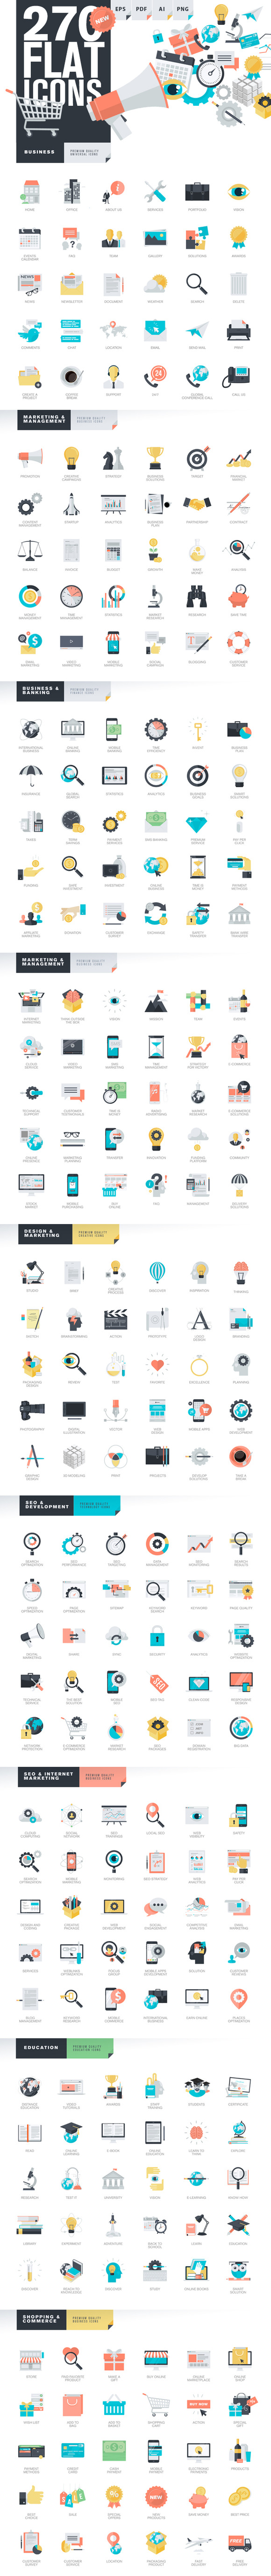 Modern Flat Design Style Icons